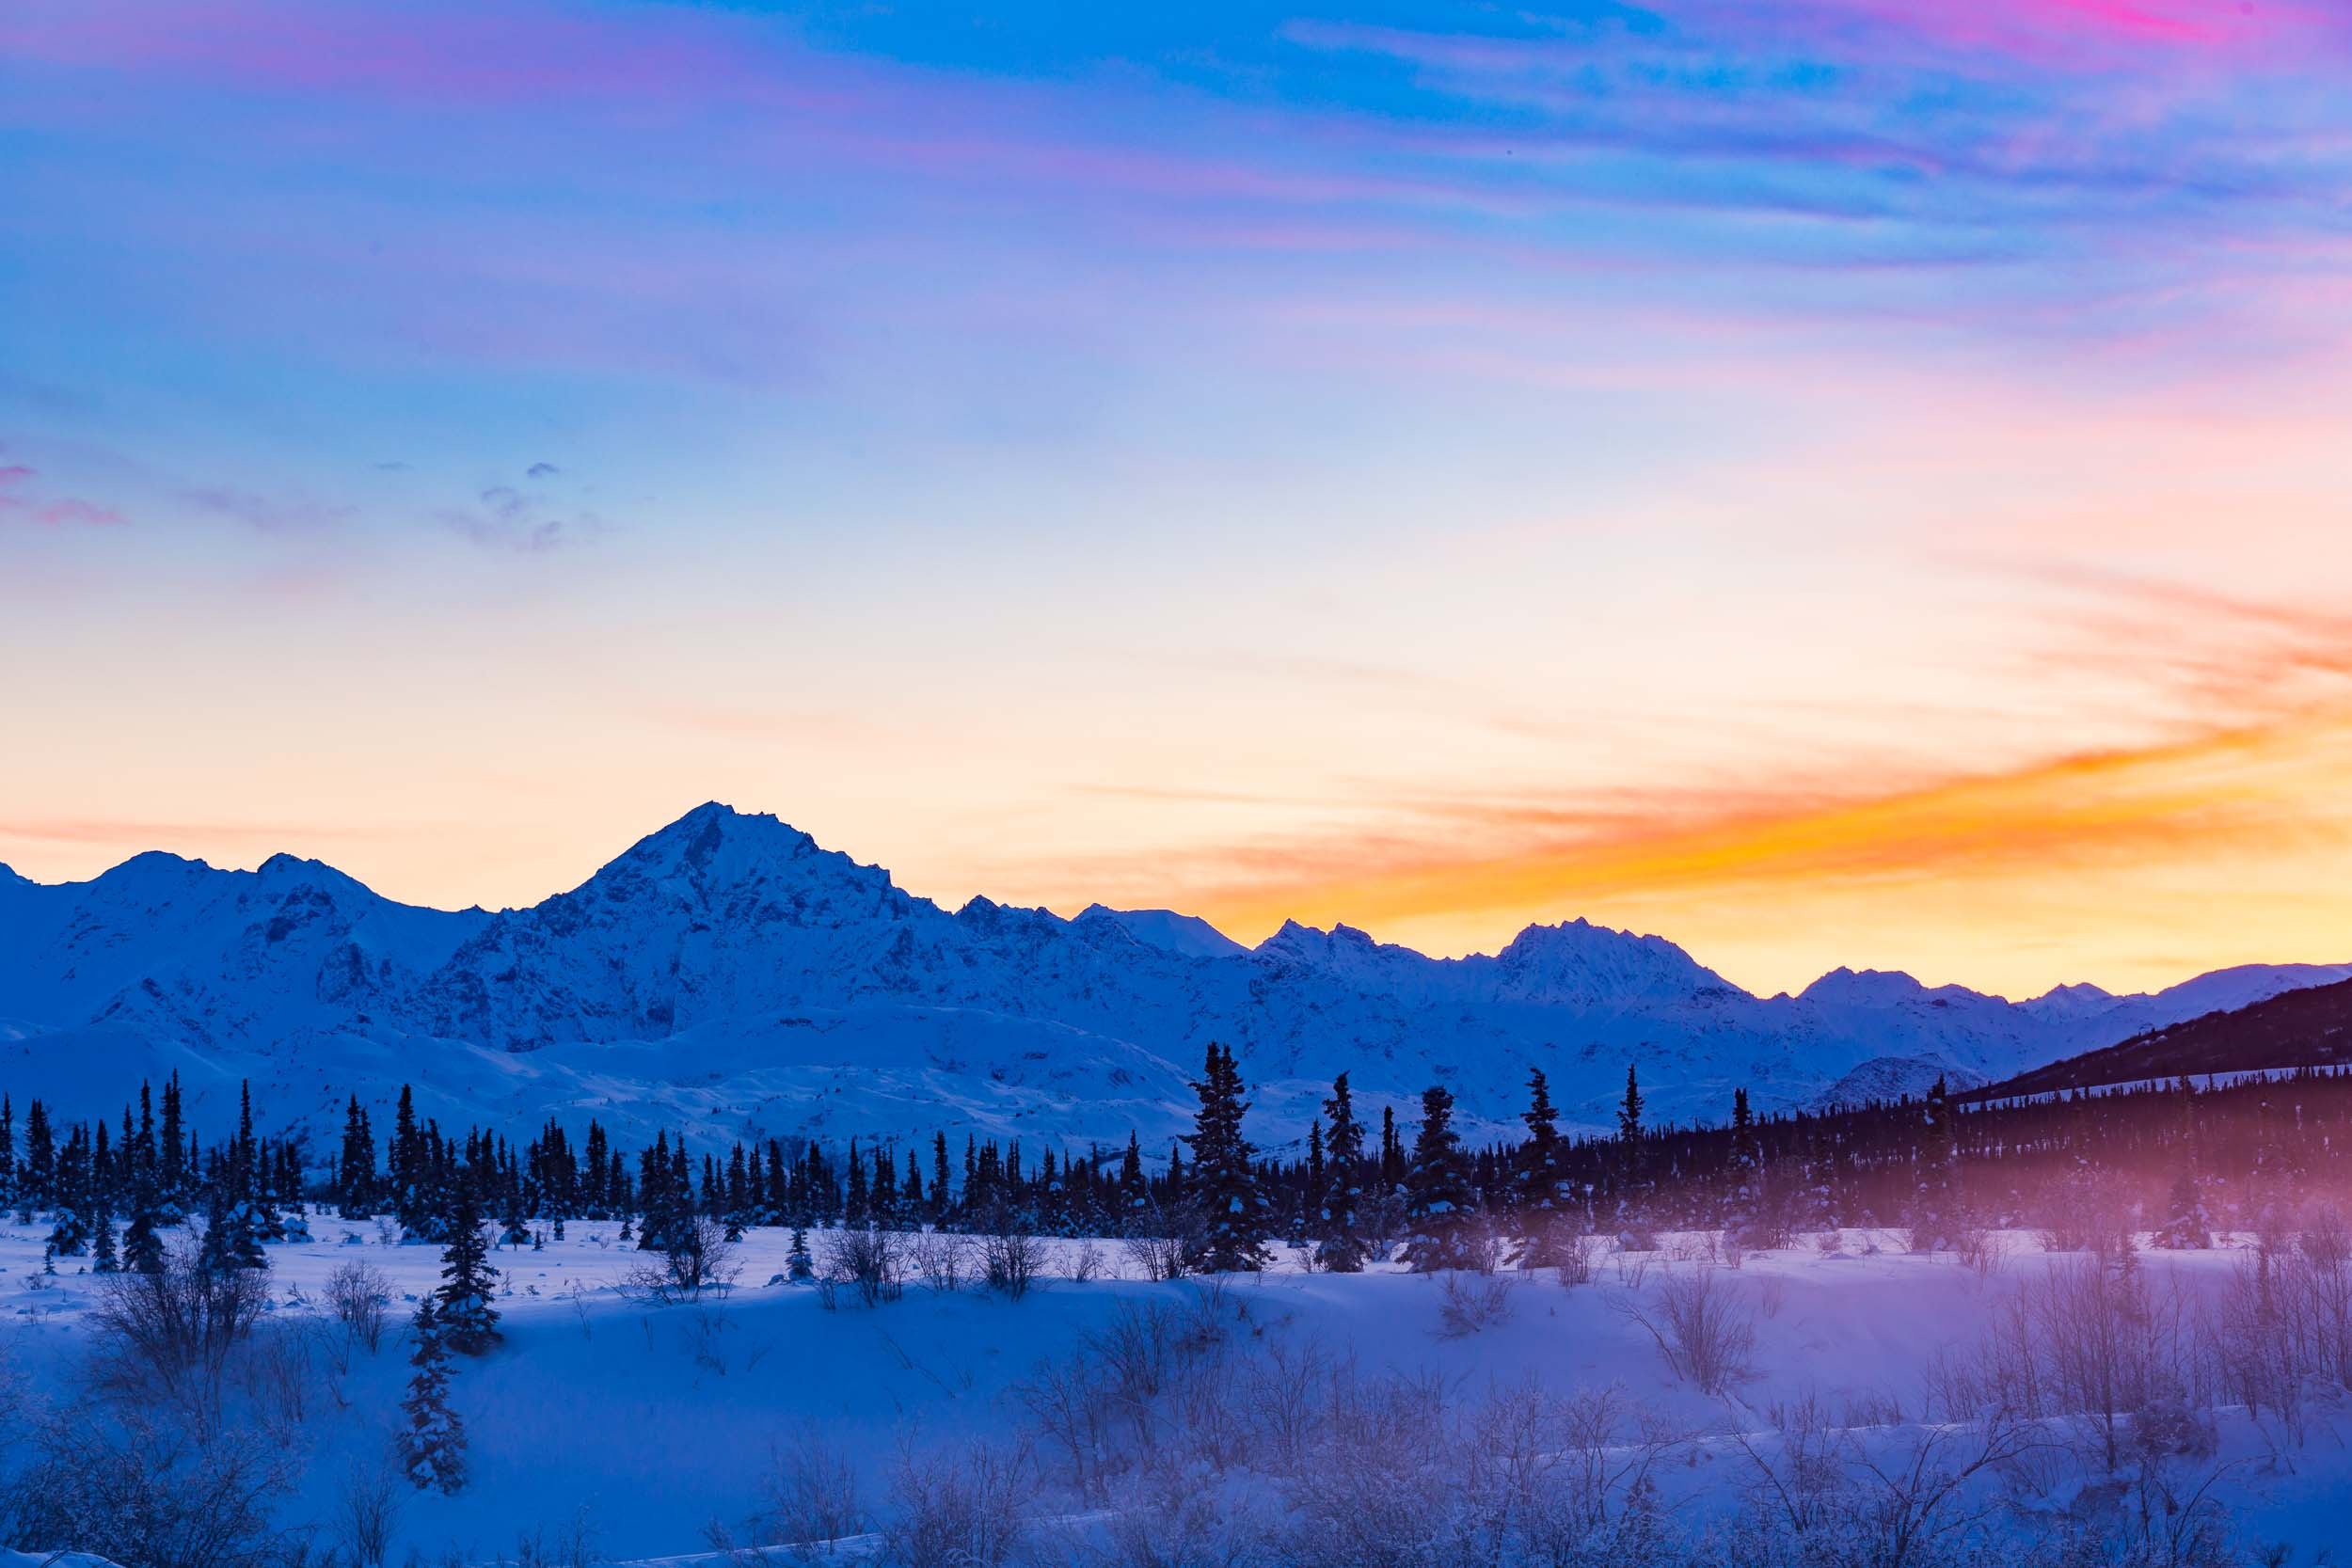 Chugach Mountain Winter Landscape Alaska Tourism Photographer